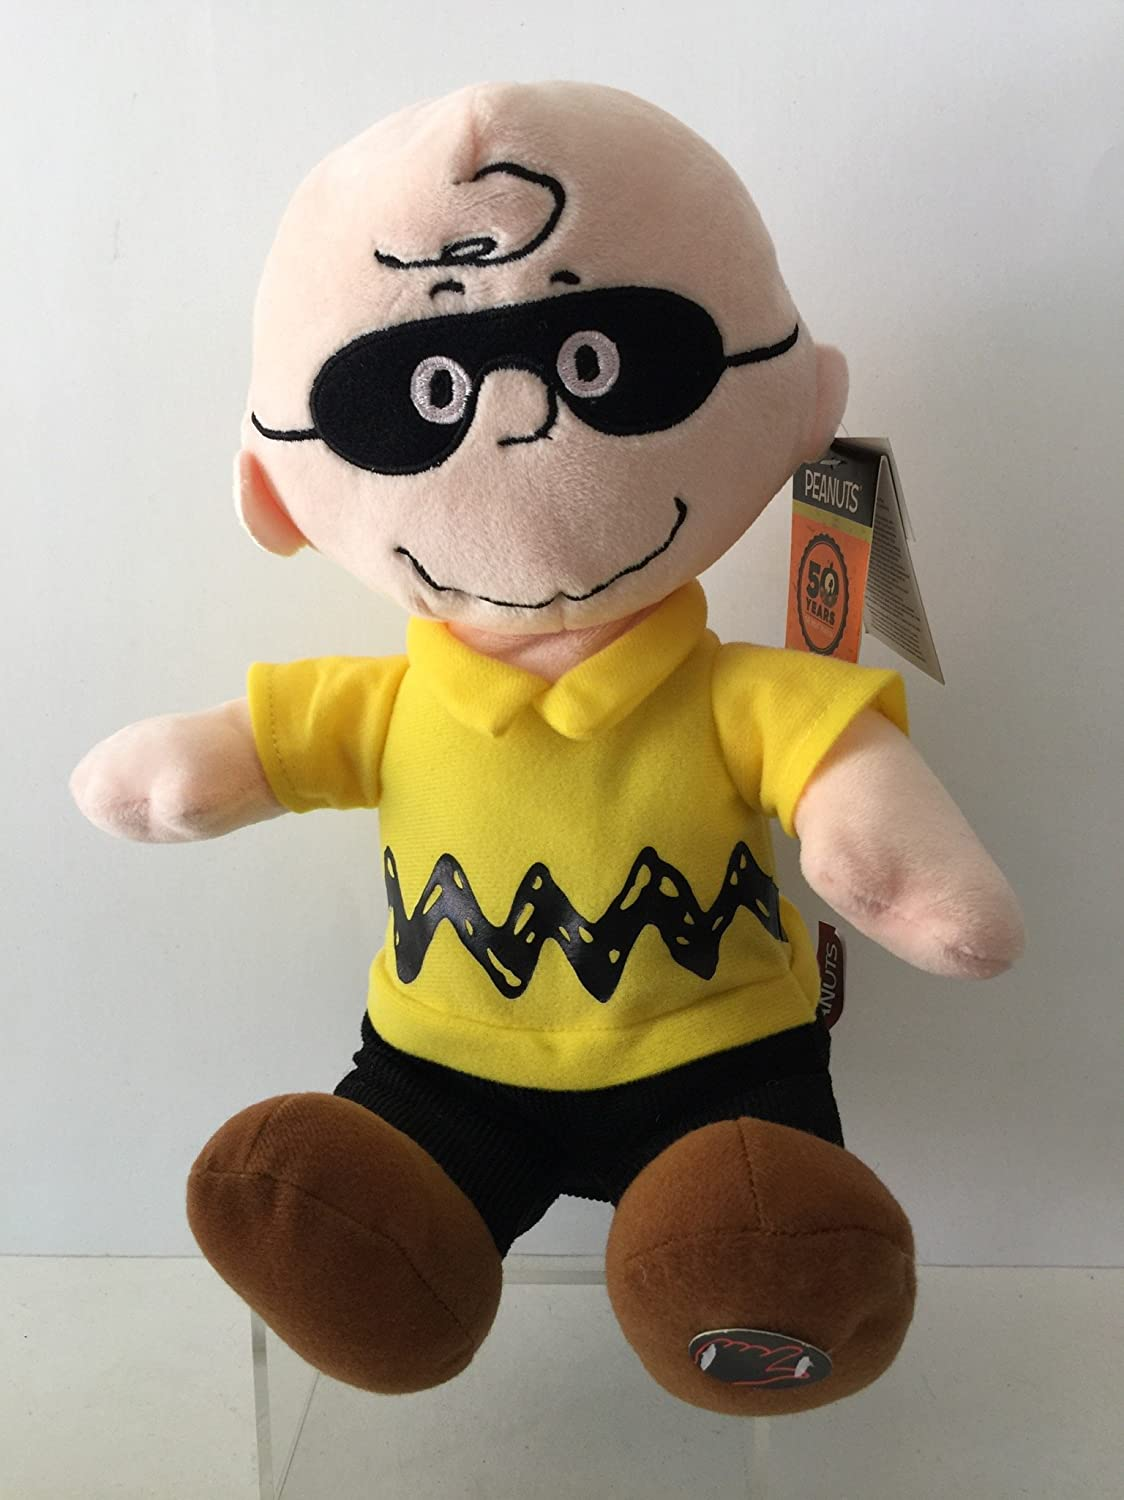 You can buy theCharlie Brown Halloween Animated Plush here